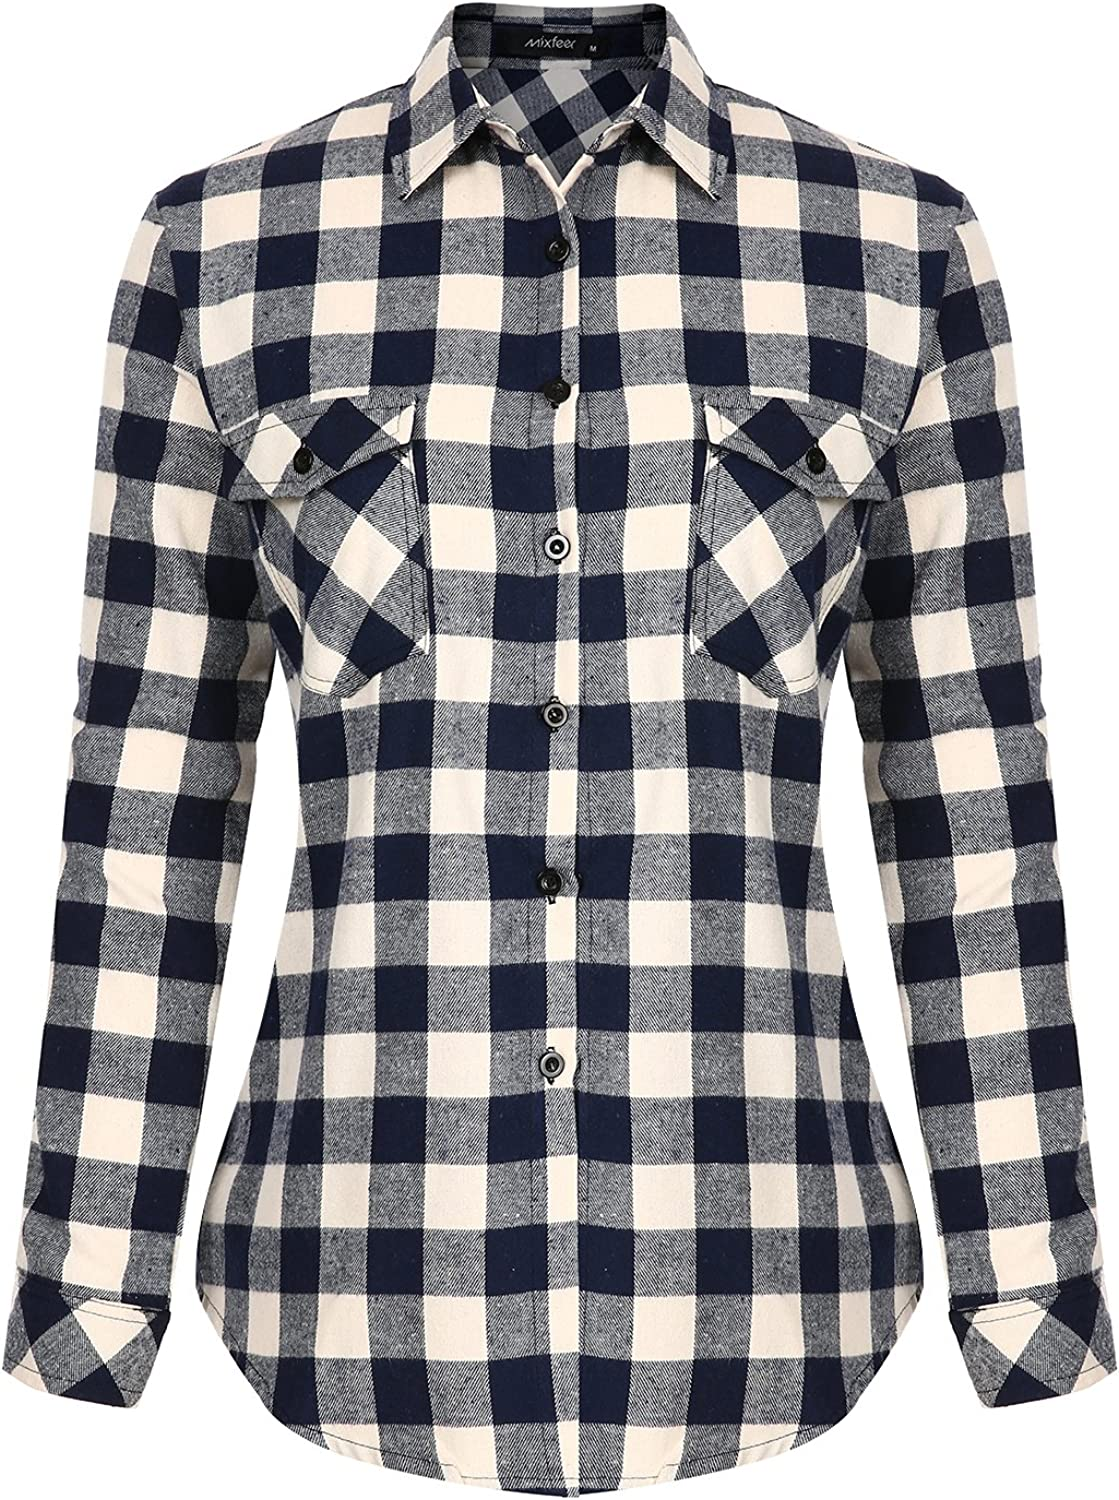 Womens Casual Button Down Shirts Classic Plaid Long Sleeve Loose Blouse Tops with Pockets